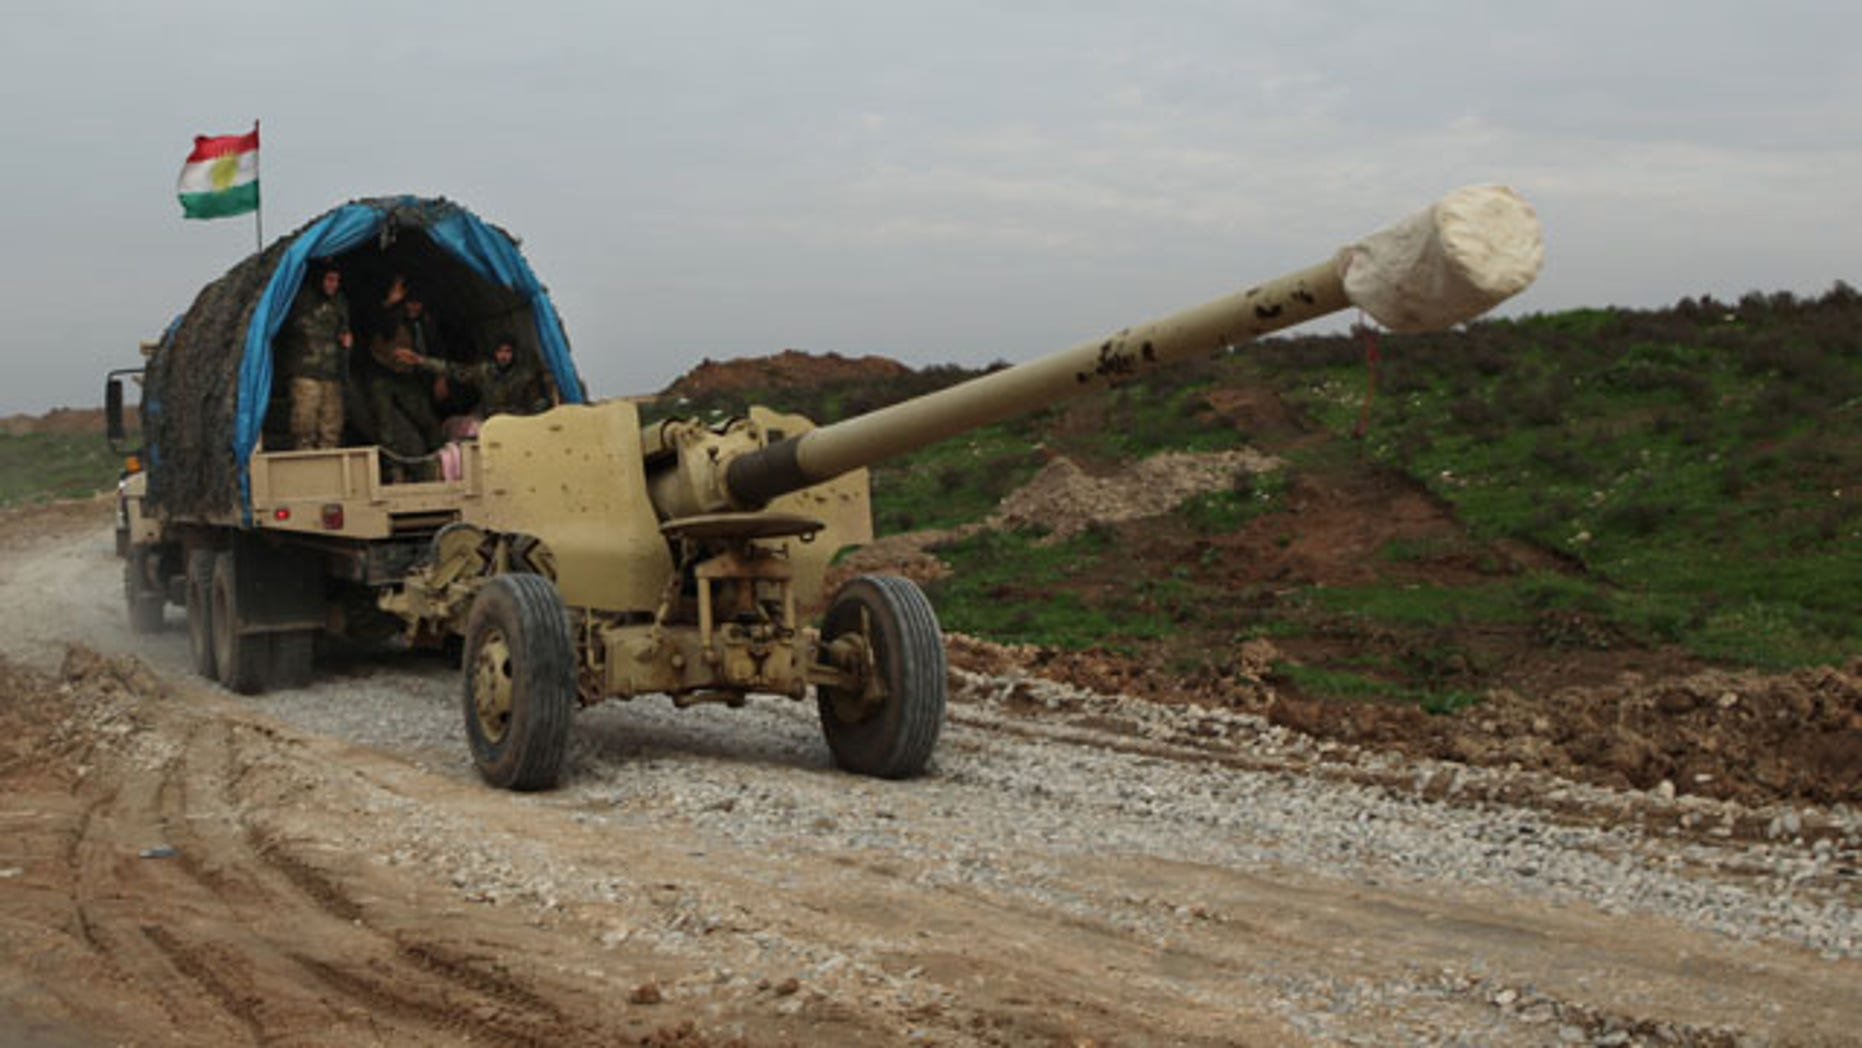 Dec. 19, 2014: Iraqi Kurdish forces tow a howitzer near the front lines on their way to the city of Sinjar, as the Kurdish peshmerga fighters move through Zumar, Iraq. (AP Photo/Zana Ahmed)